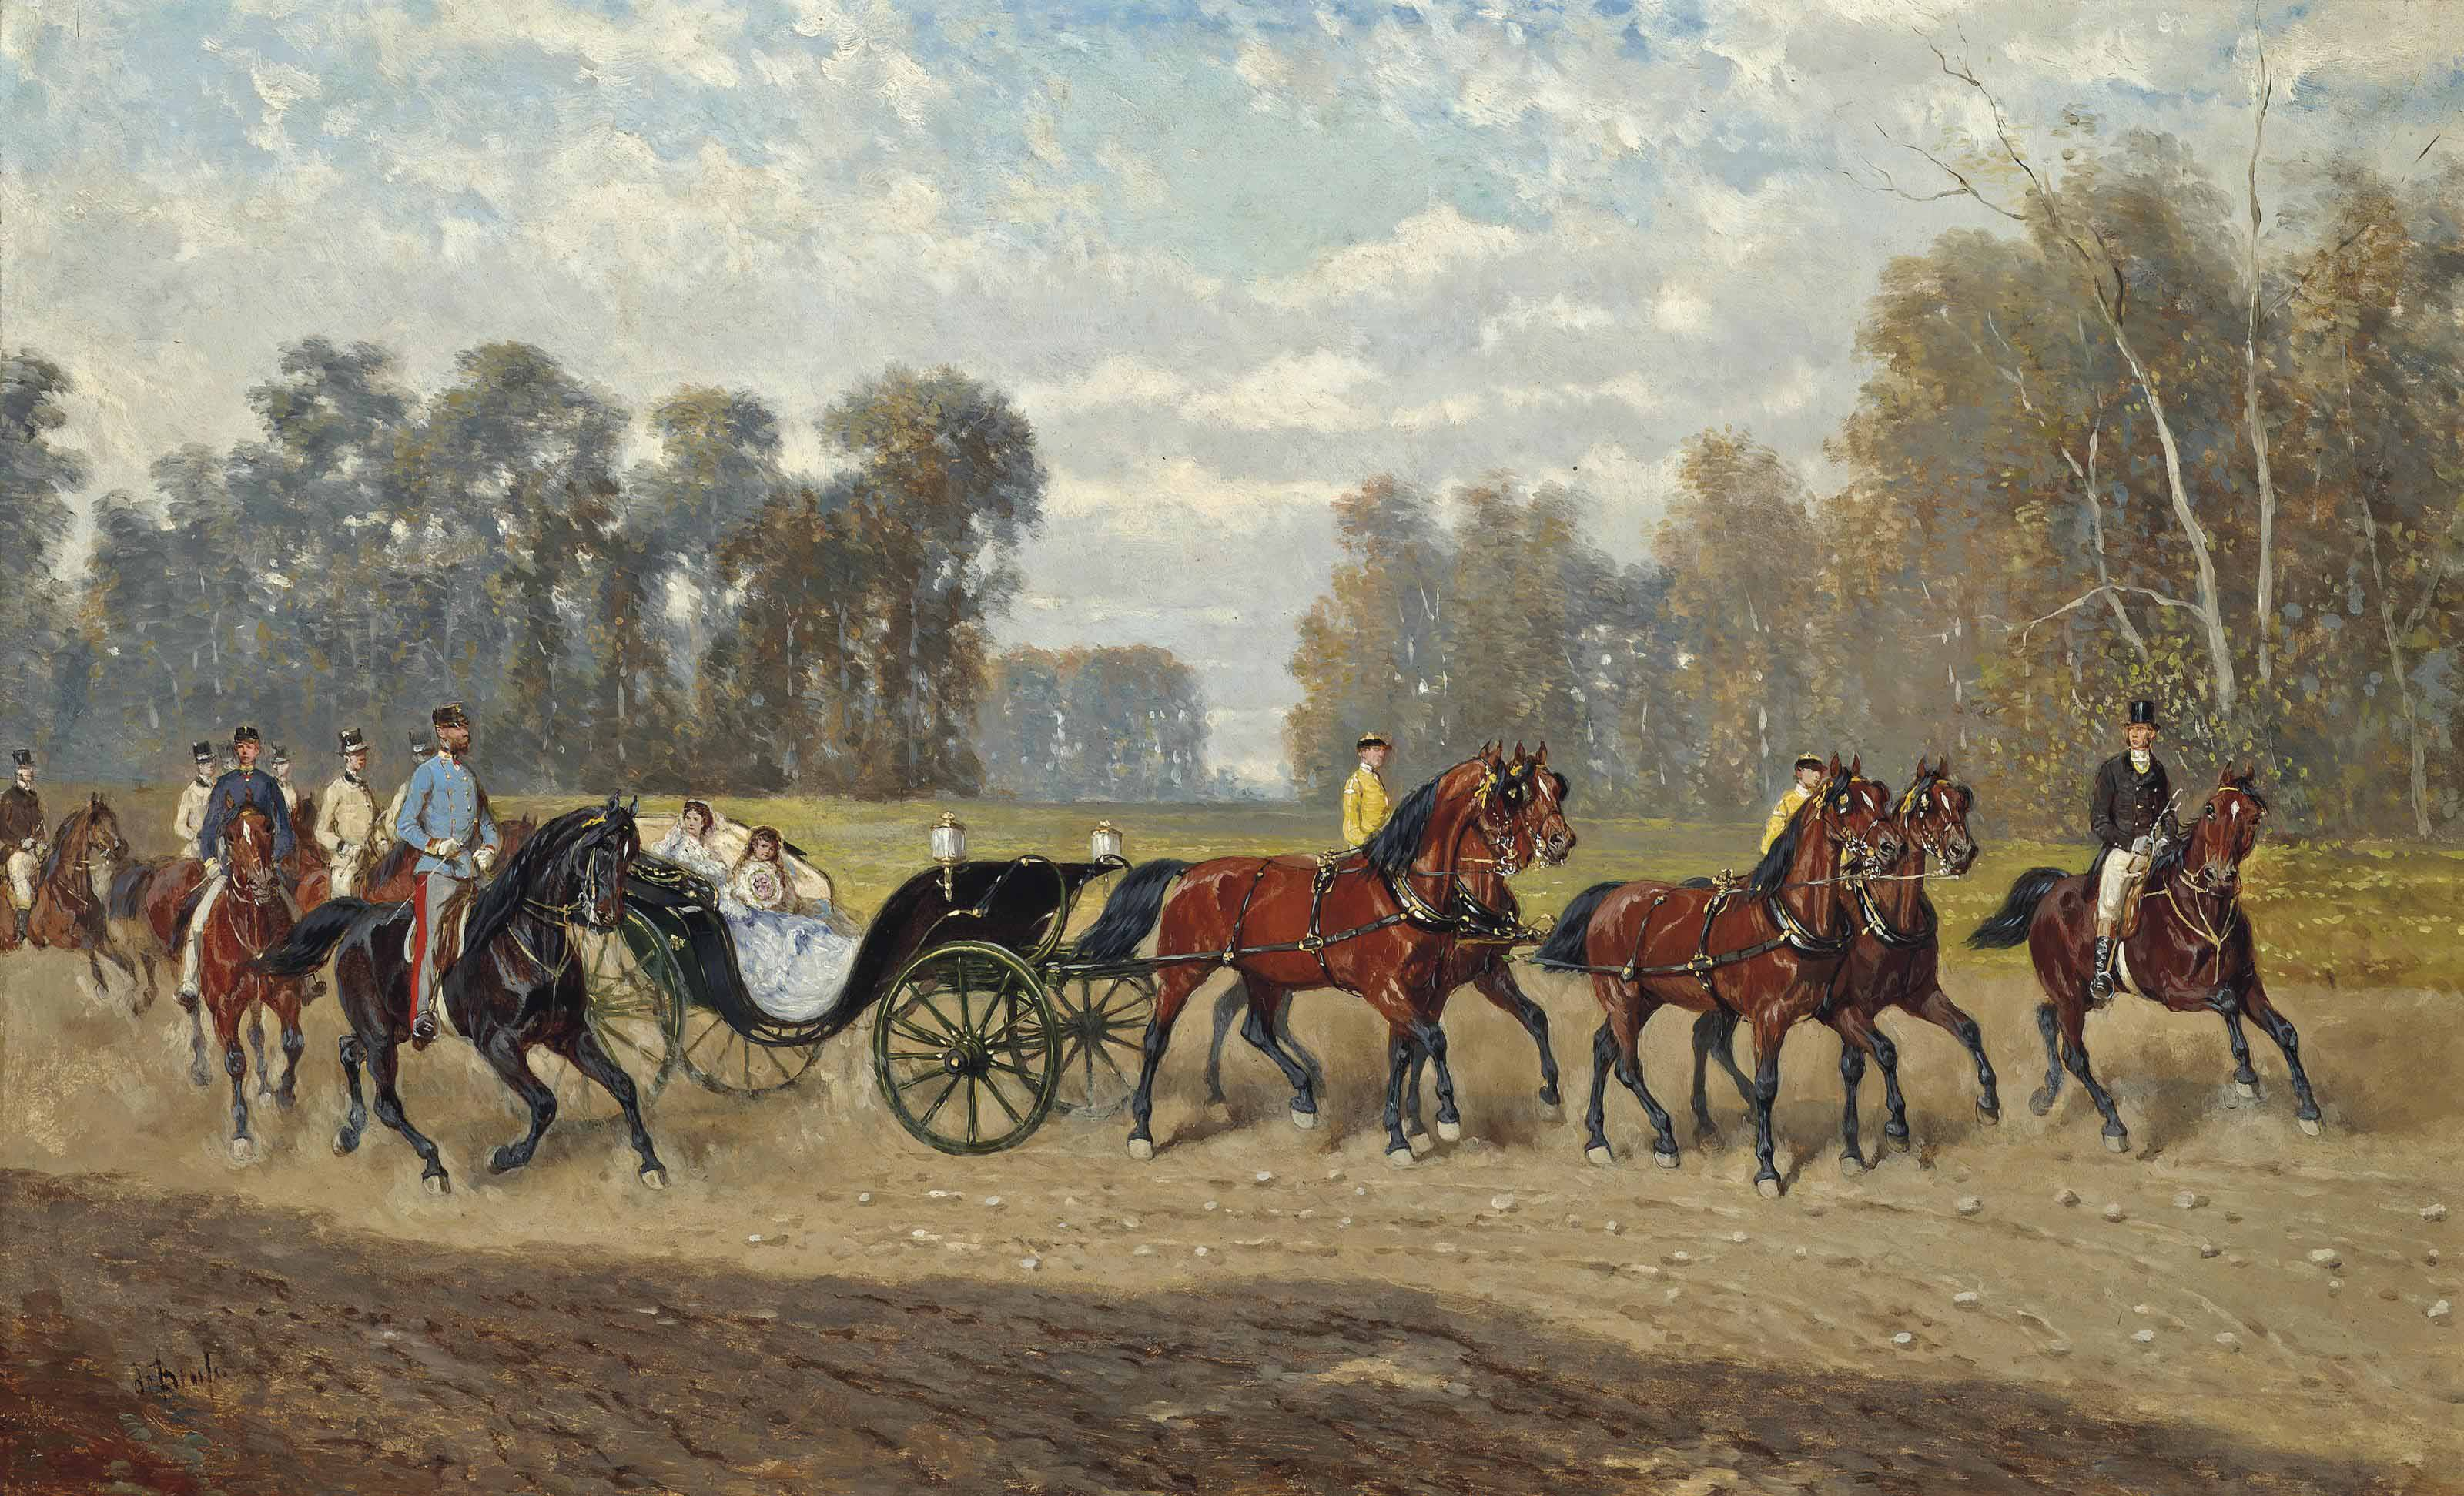 The Imperial entourage with Emperor Franz Josef I (1848-1916) on his horse, Empress Elisabeth (1854-1898) (known as Sisi) and their youngest daughter Archduchess Marie Valerie (1868-1924) in the carriage